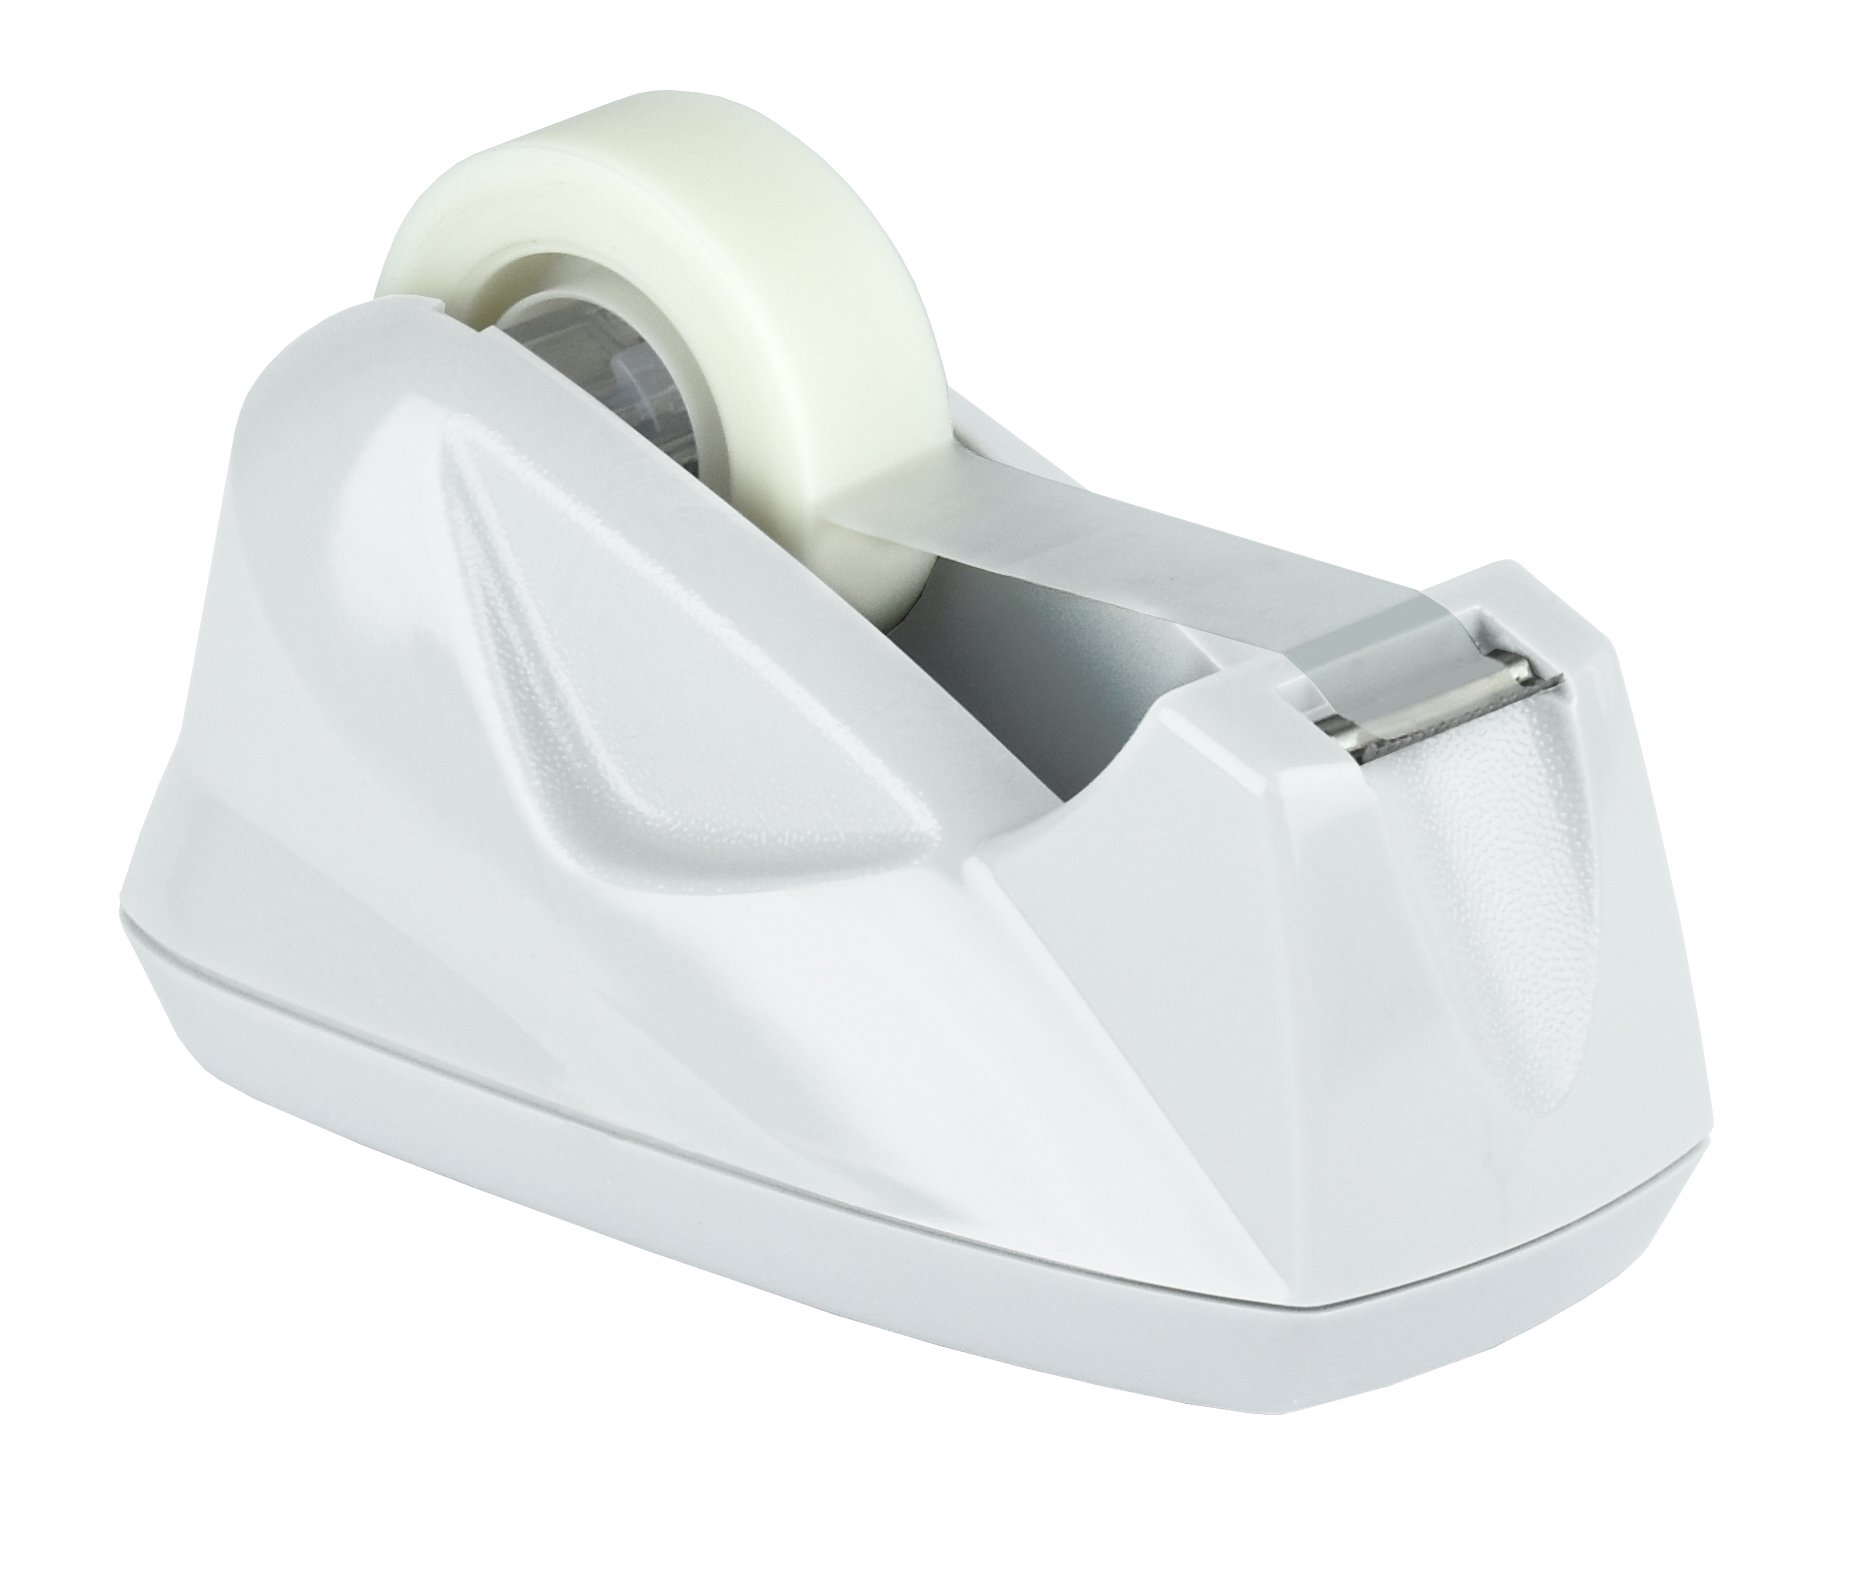 Acrimet Premium Tape Dispenser (White Color)